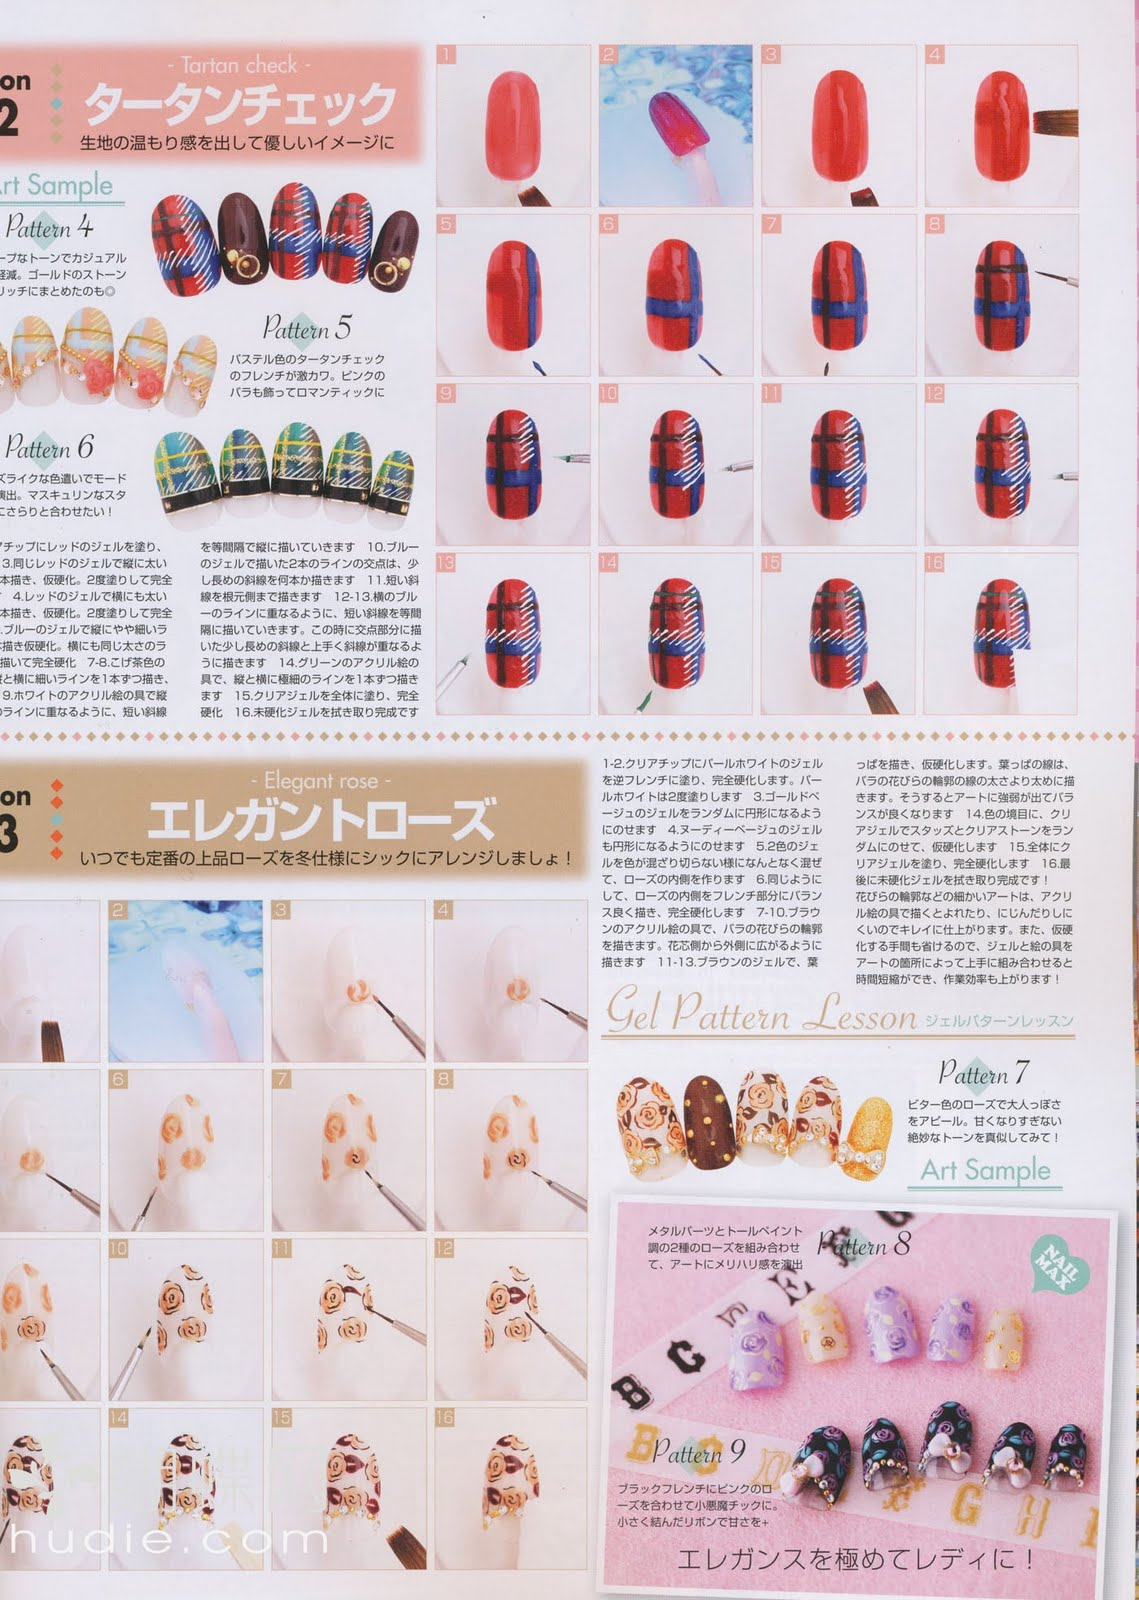 Nail Trend: Magazine scans from Nail Max December 2010